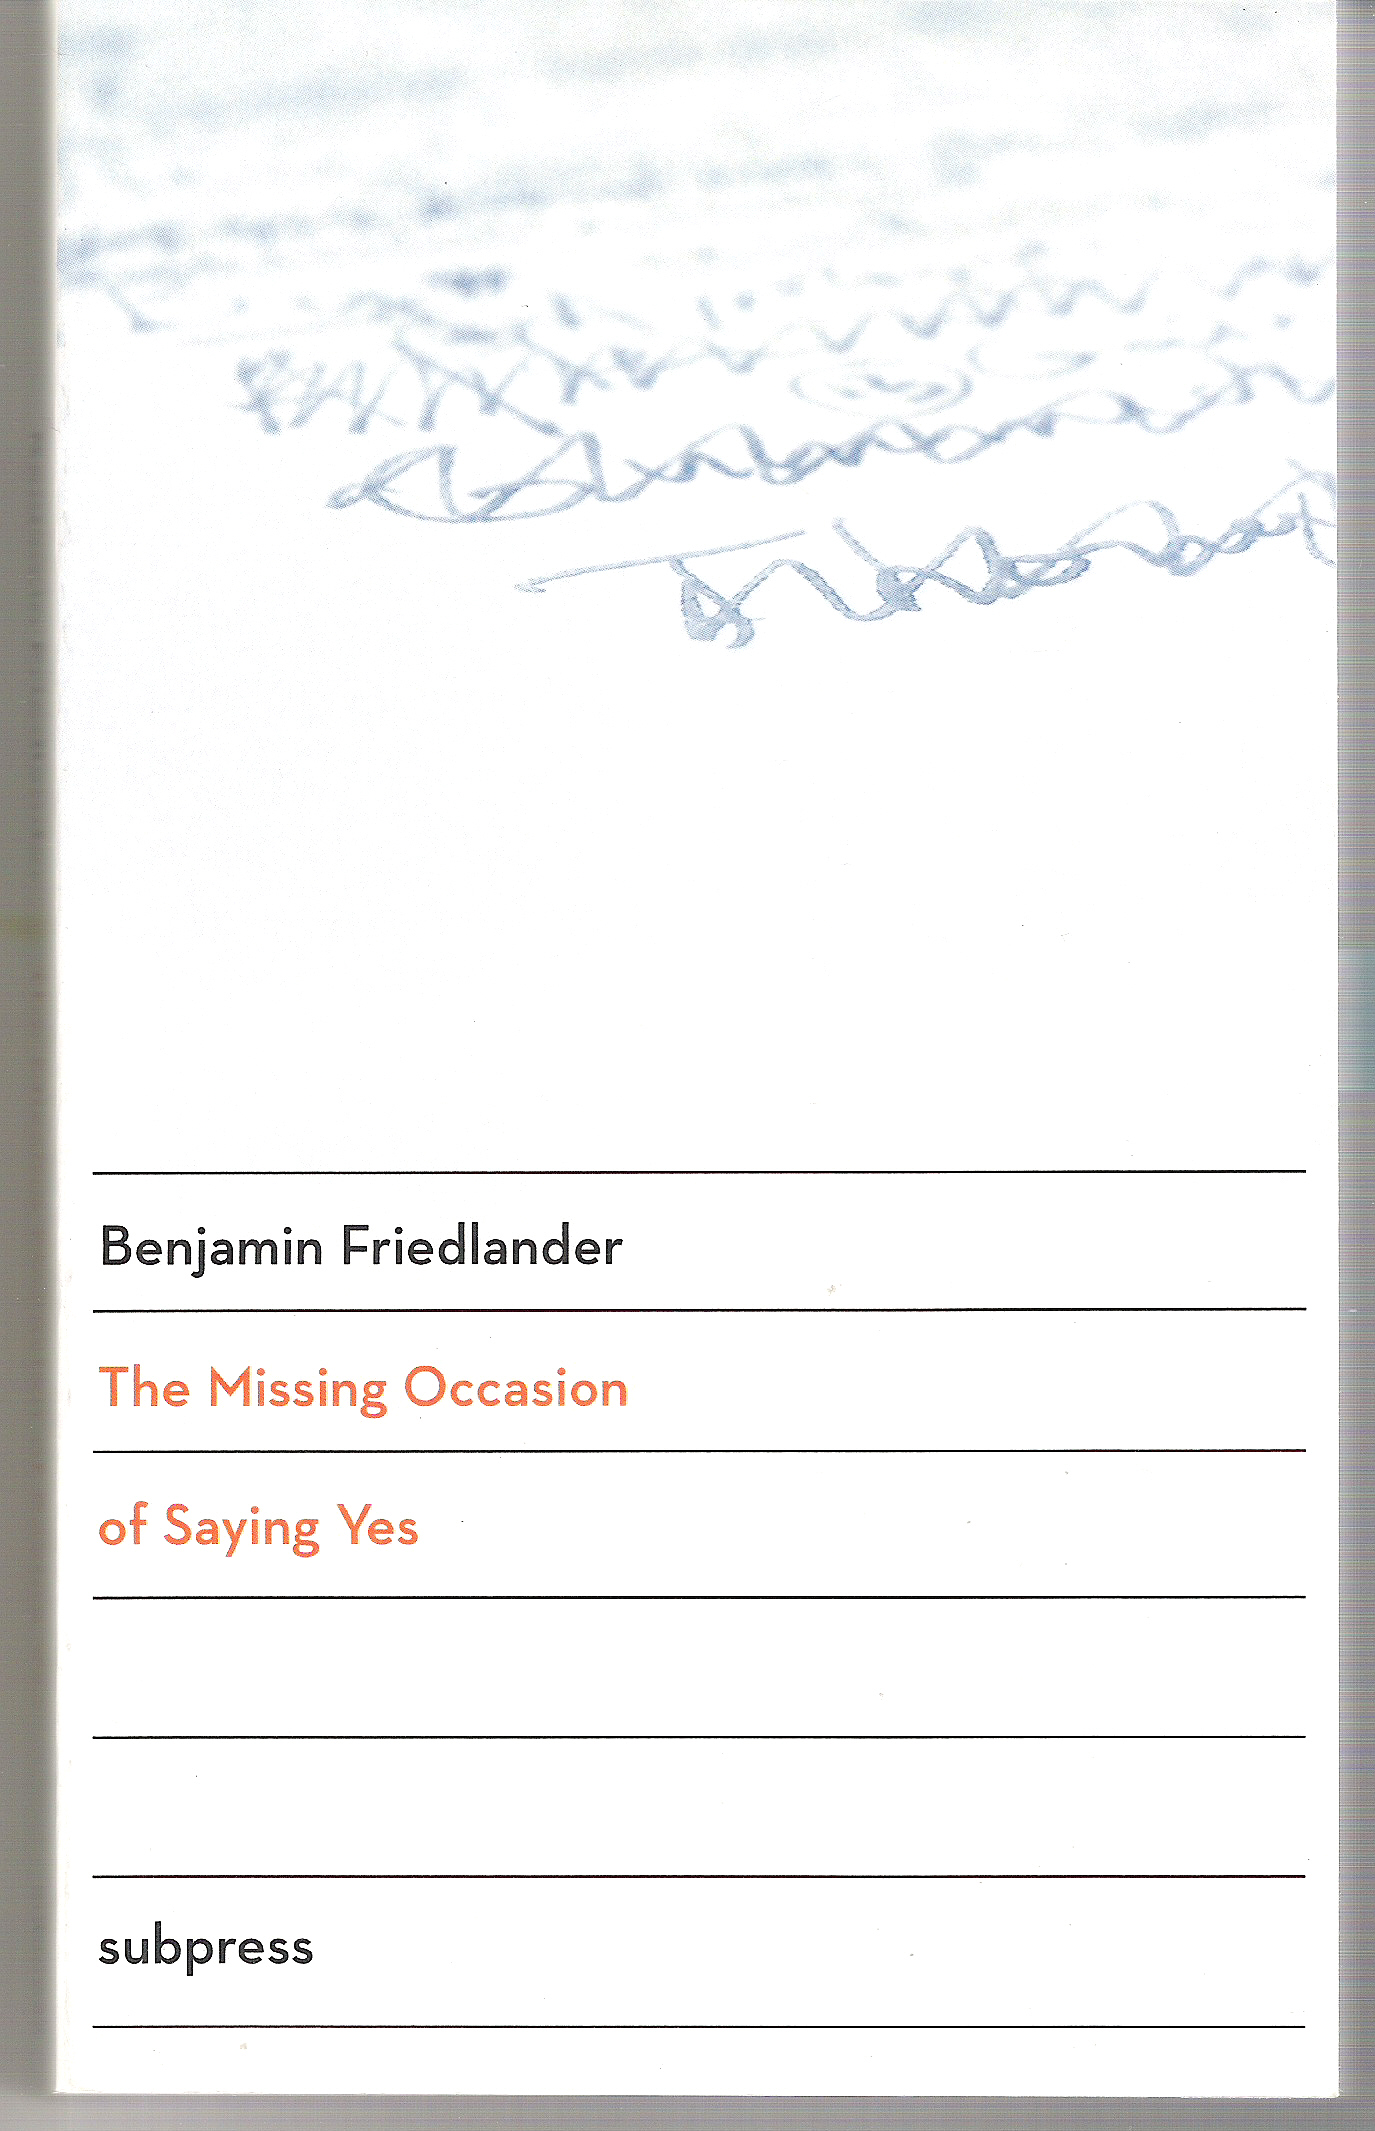 Benjamin Friedlander The Missing Occasion of Saying yes